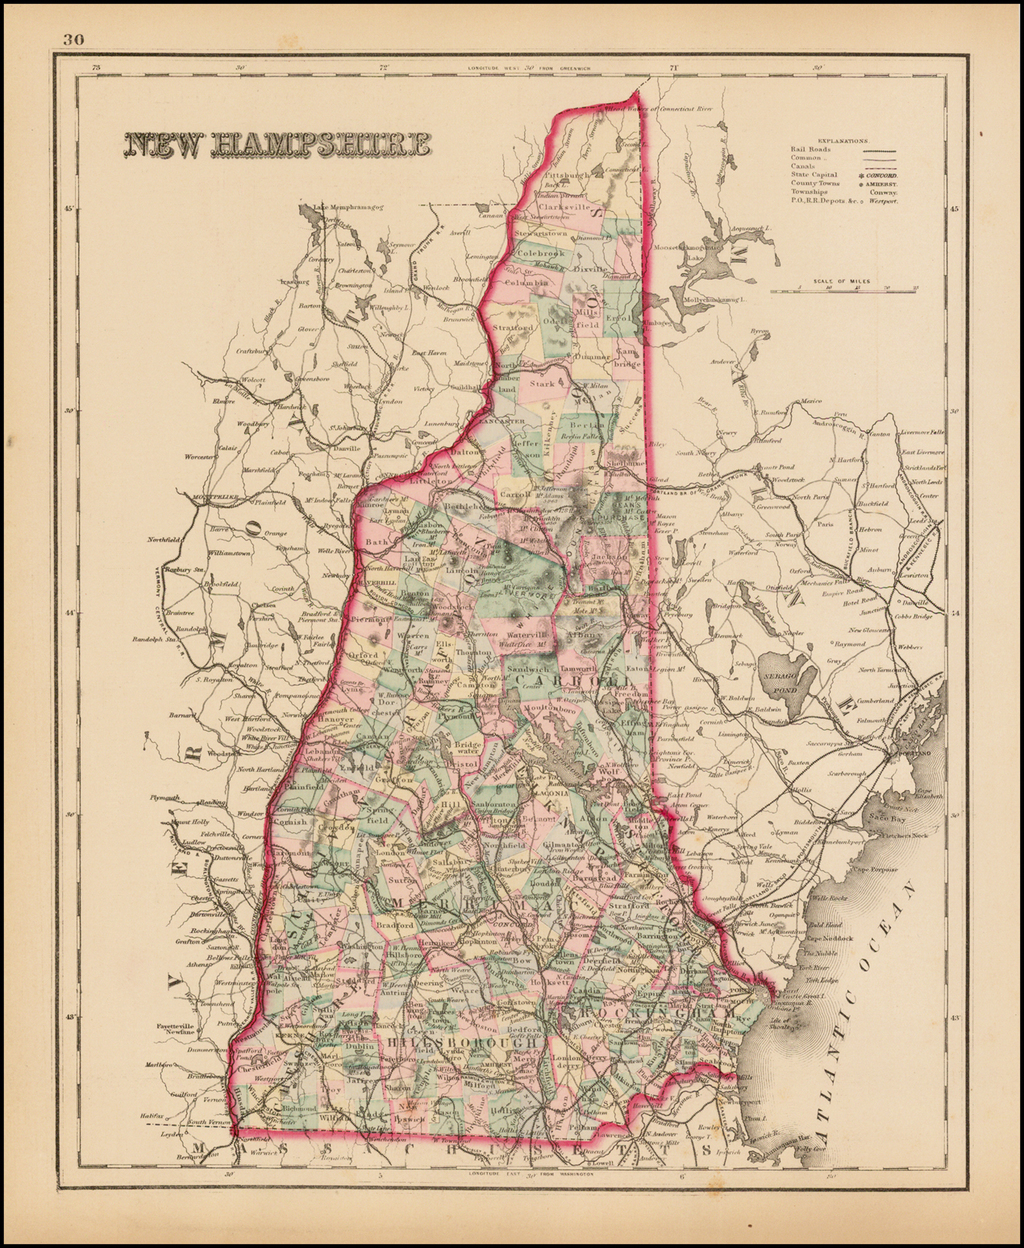 New Hampshire By O.W. Gray